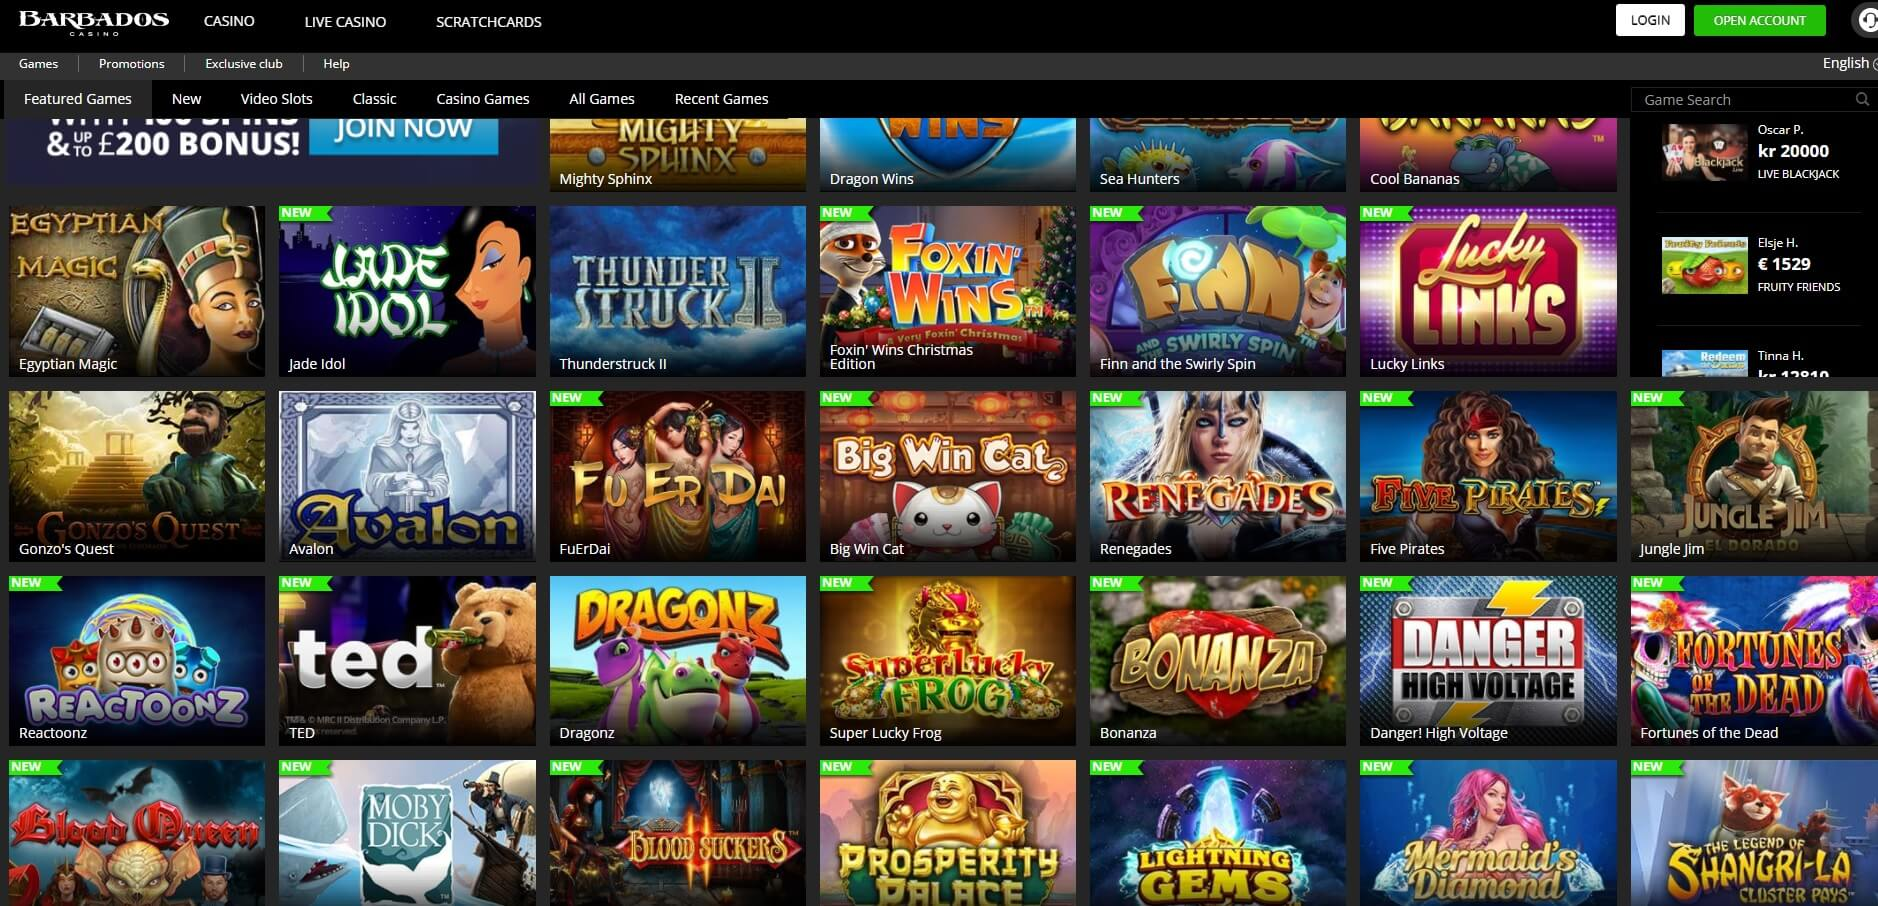 barbados casino games and slots screen